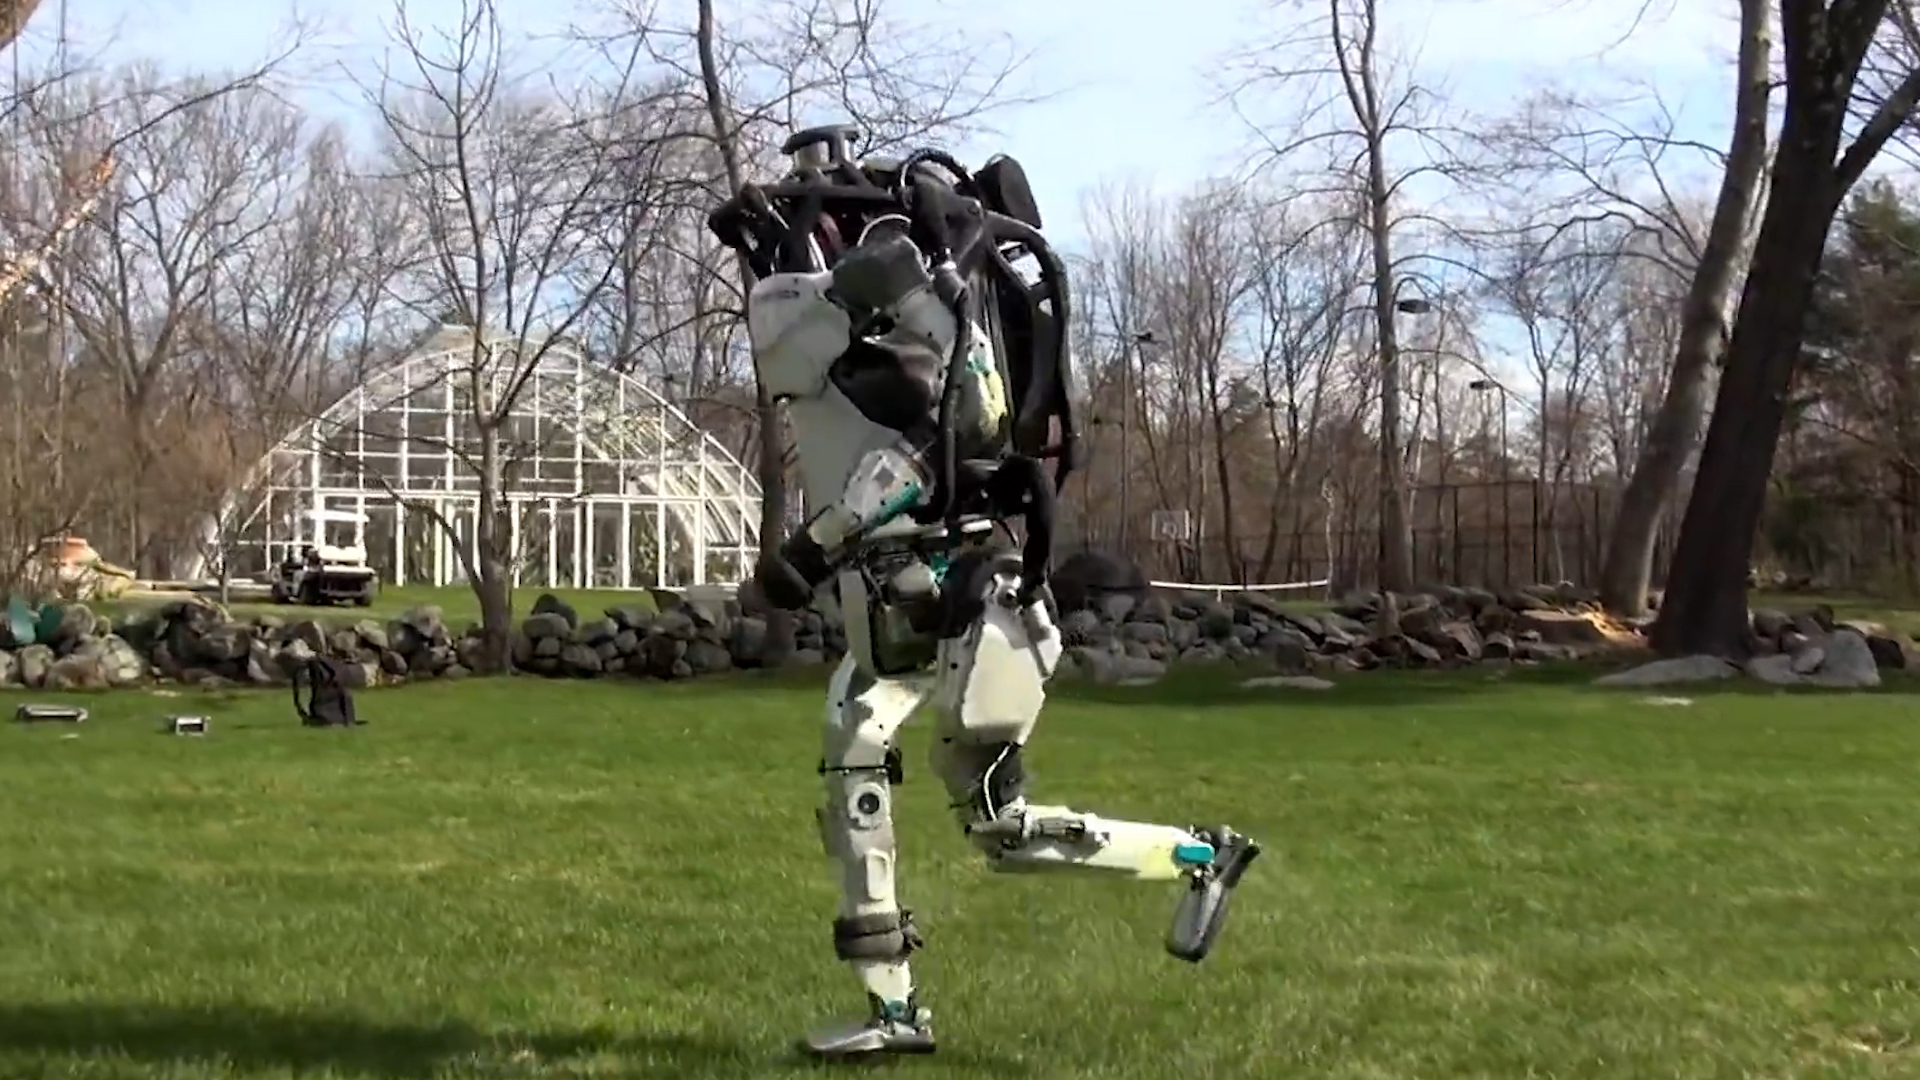 Humanoid Robot Runs Through The Park By Itself Cnn Video